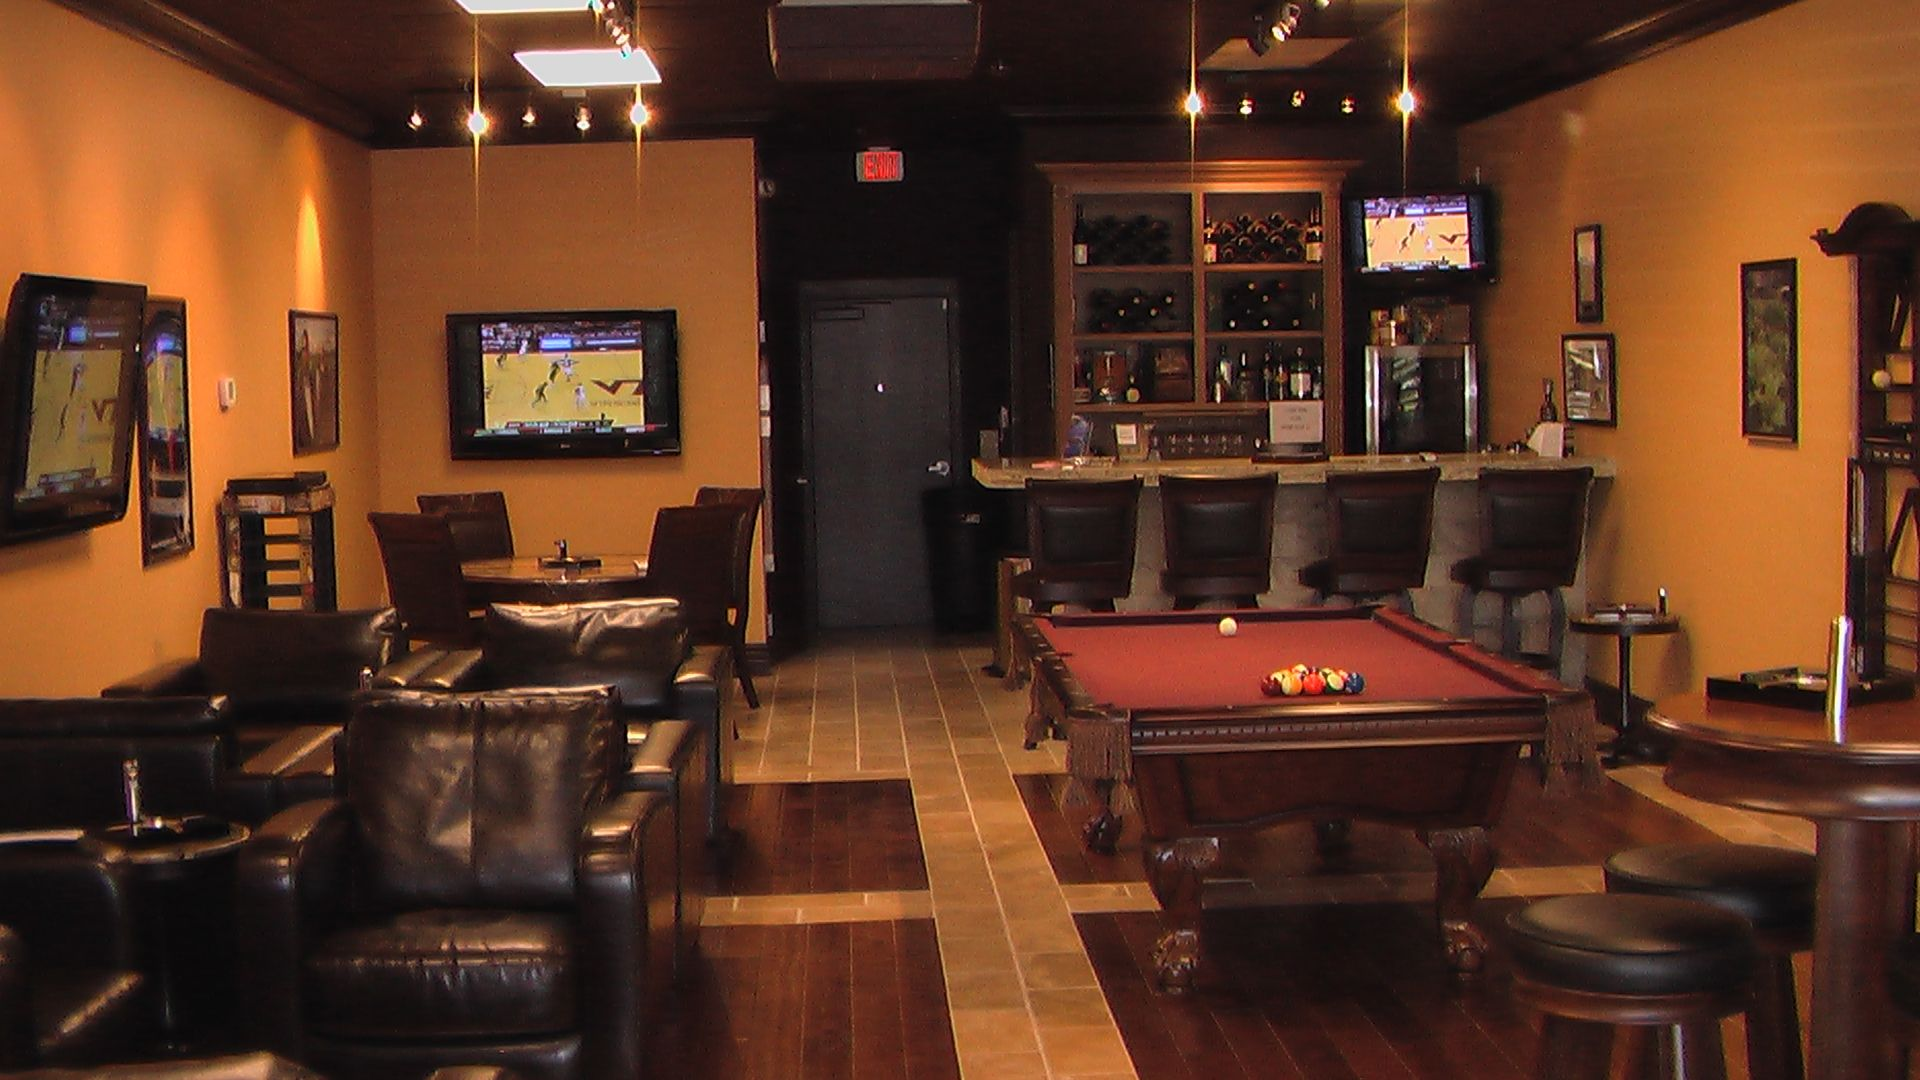 Classy Man Cave Furniture : How to make a gentleman s man cave google search house ideas